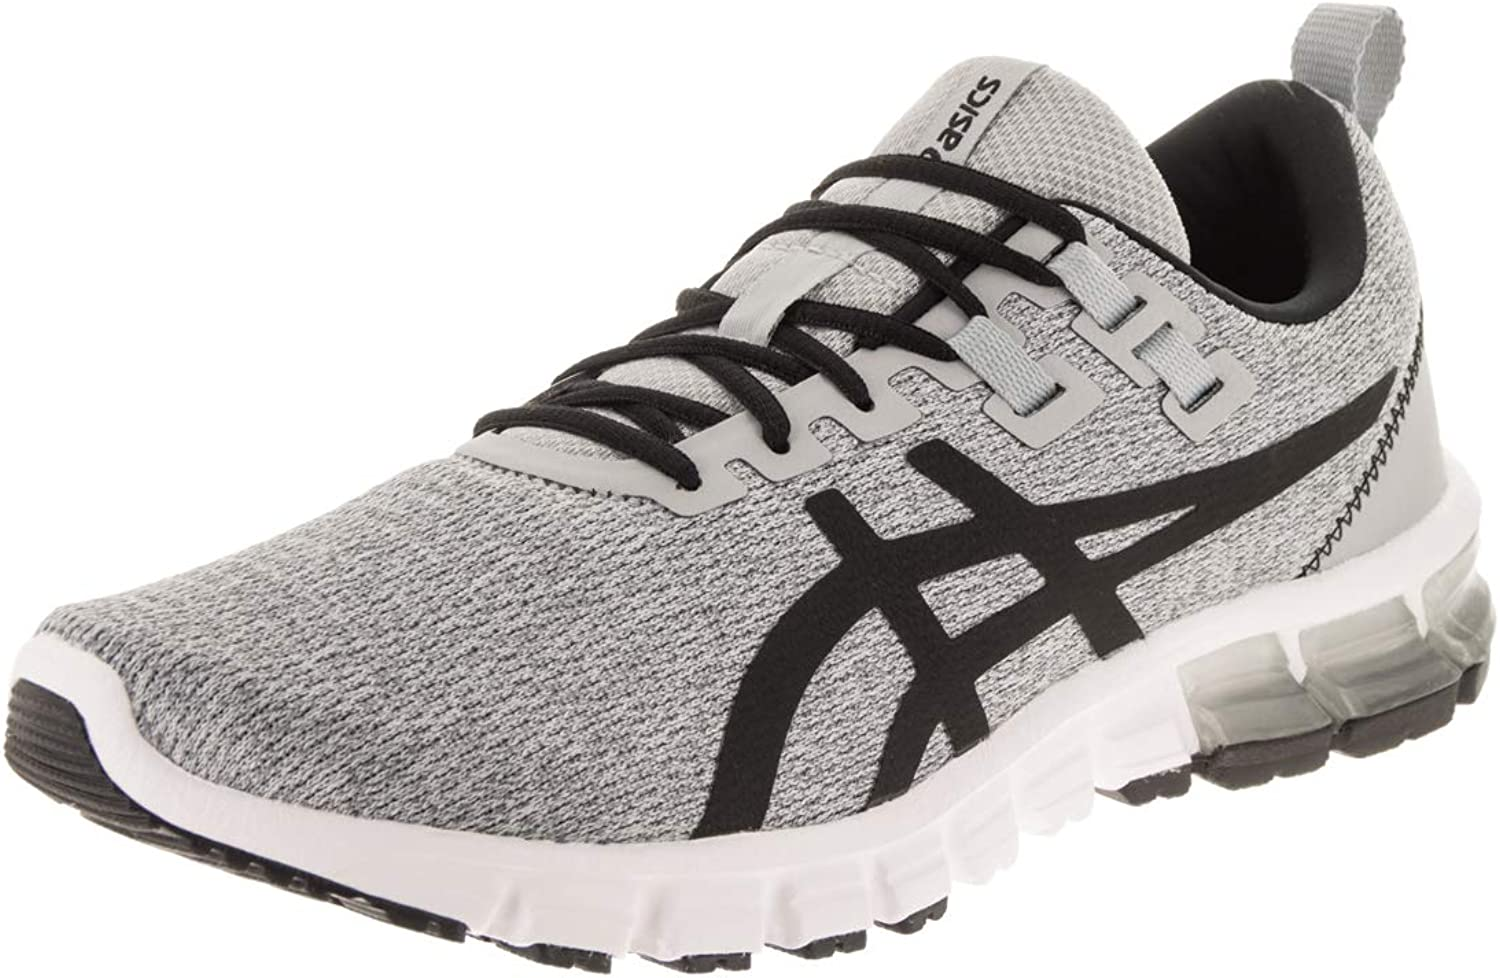 ASICS Men's Gel-Quantum 90 Running shoes